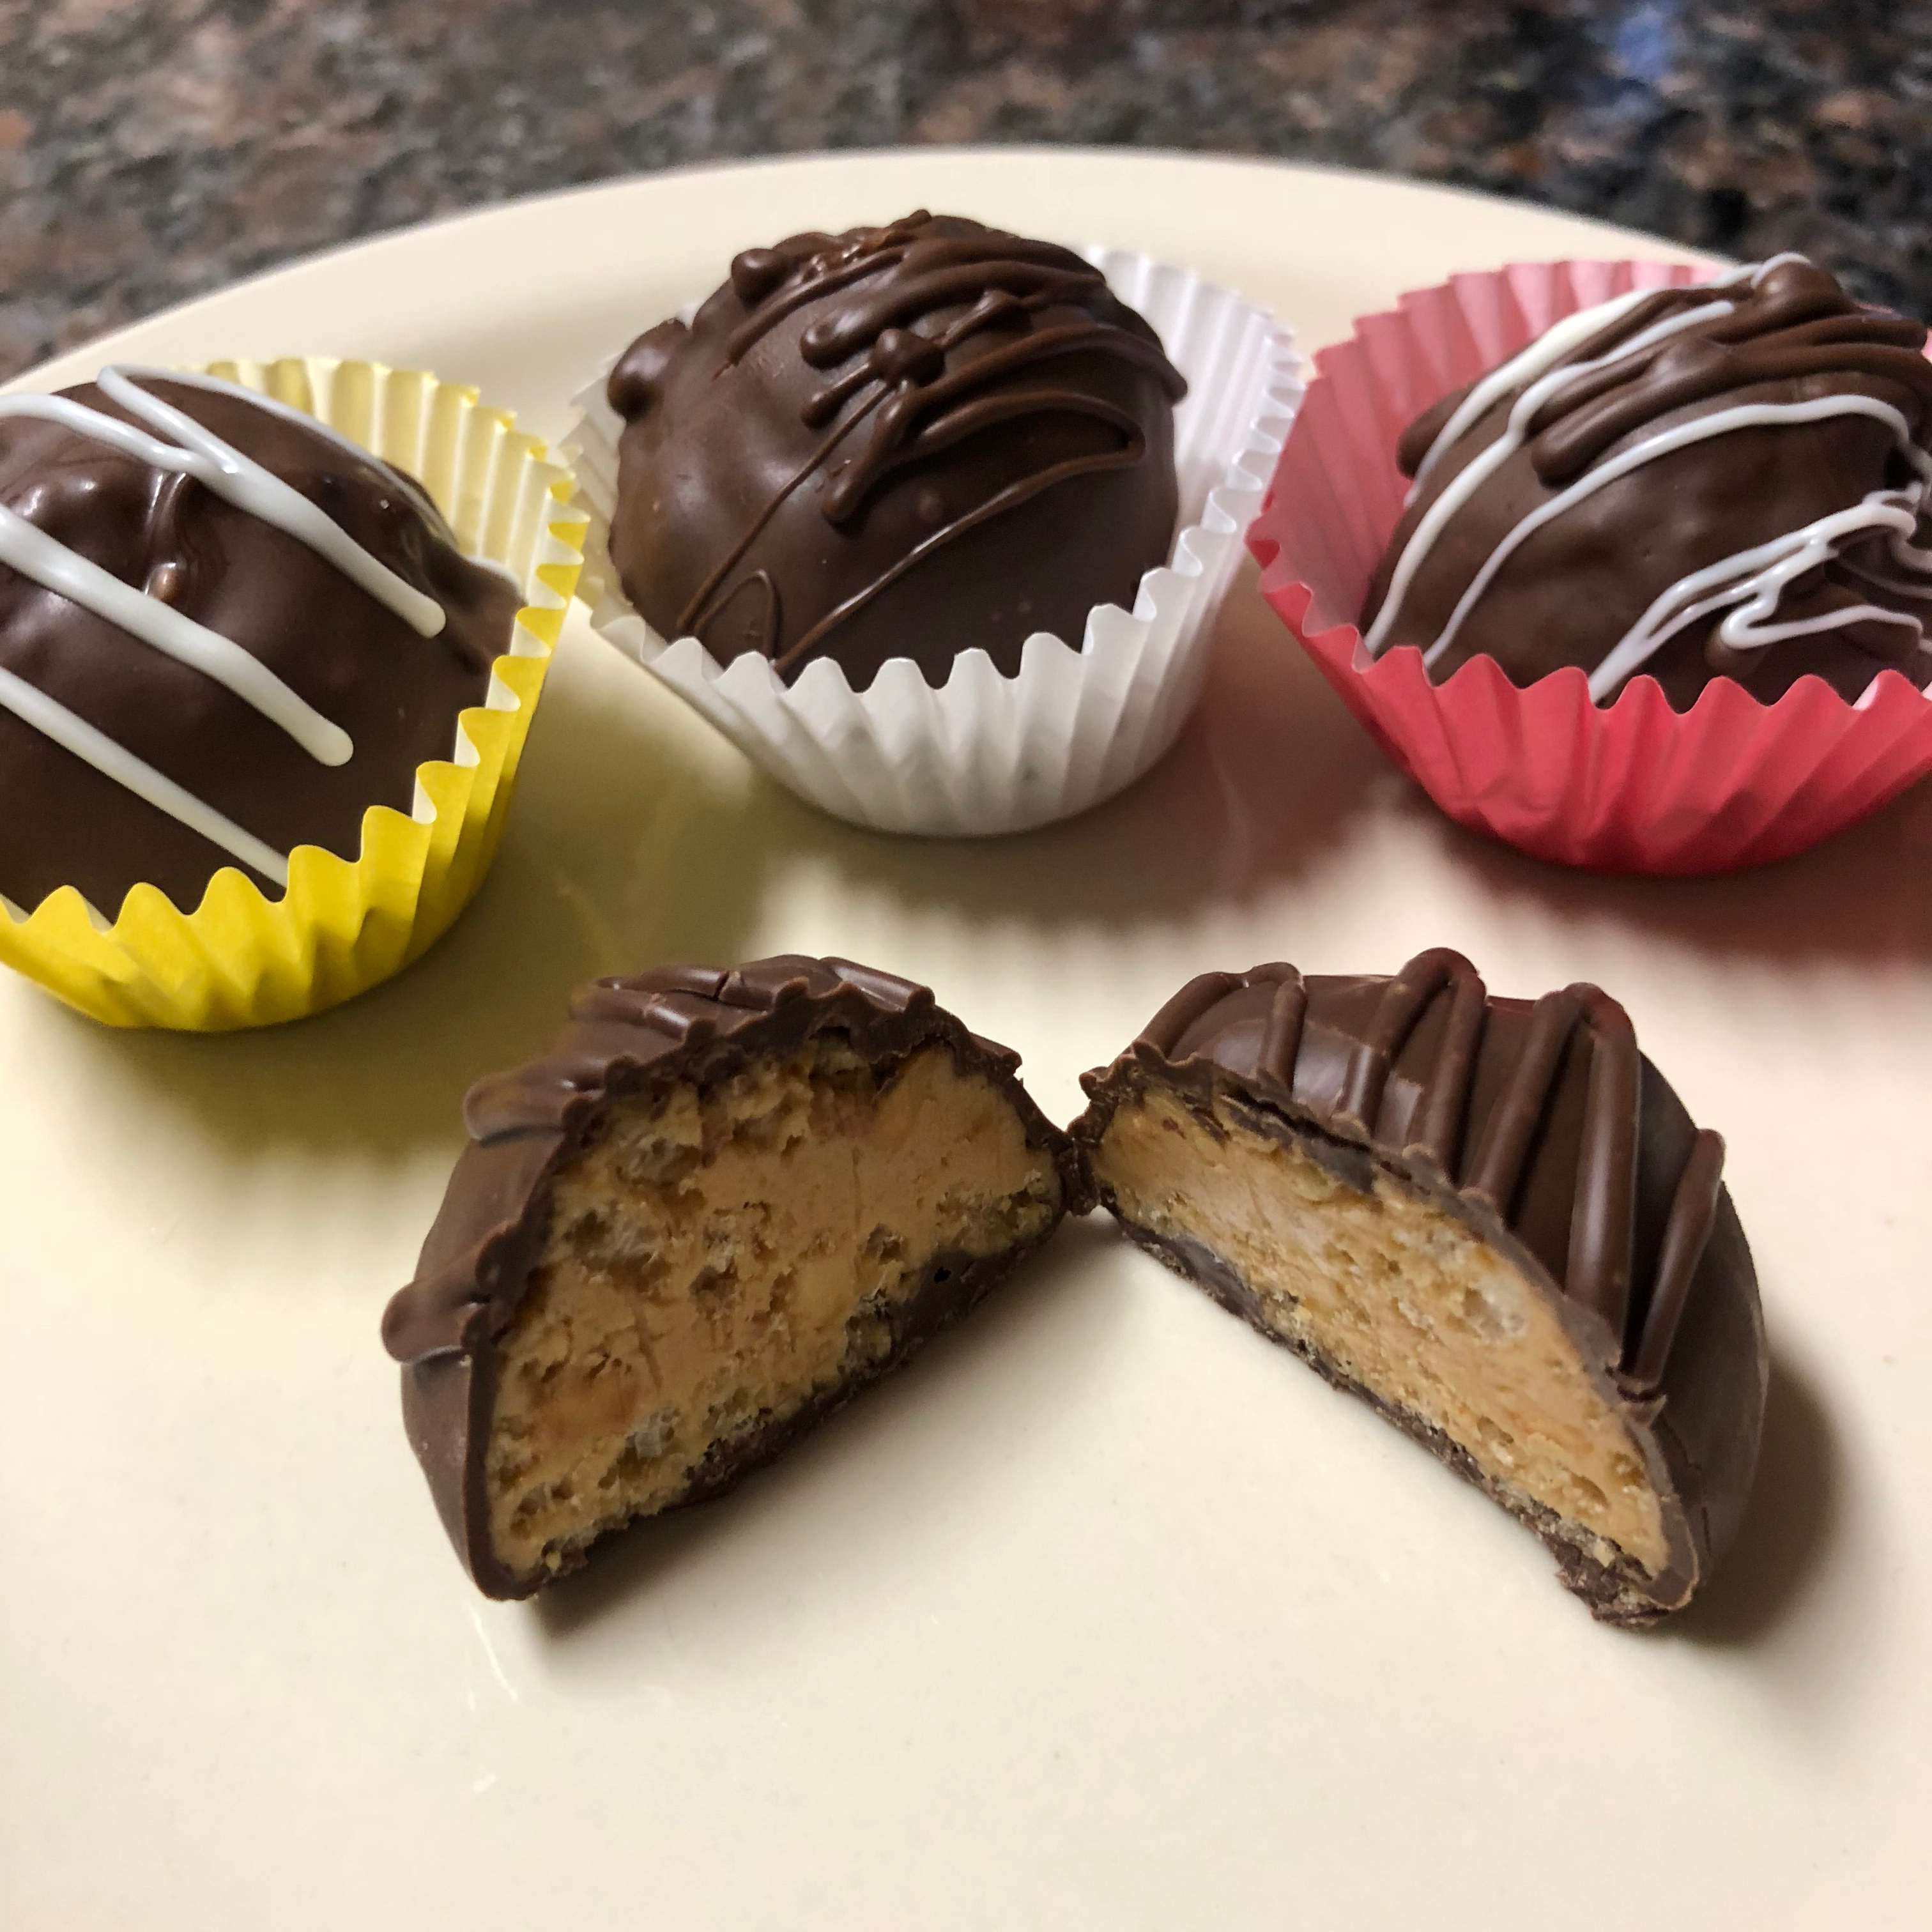 RICE KRISPIES® Chocolate Peanut Butter Balls Lorley